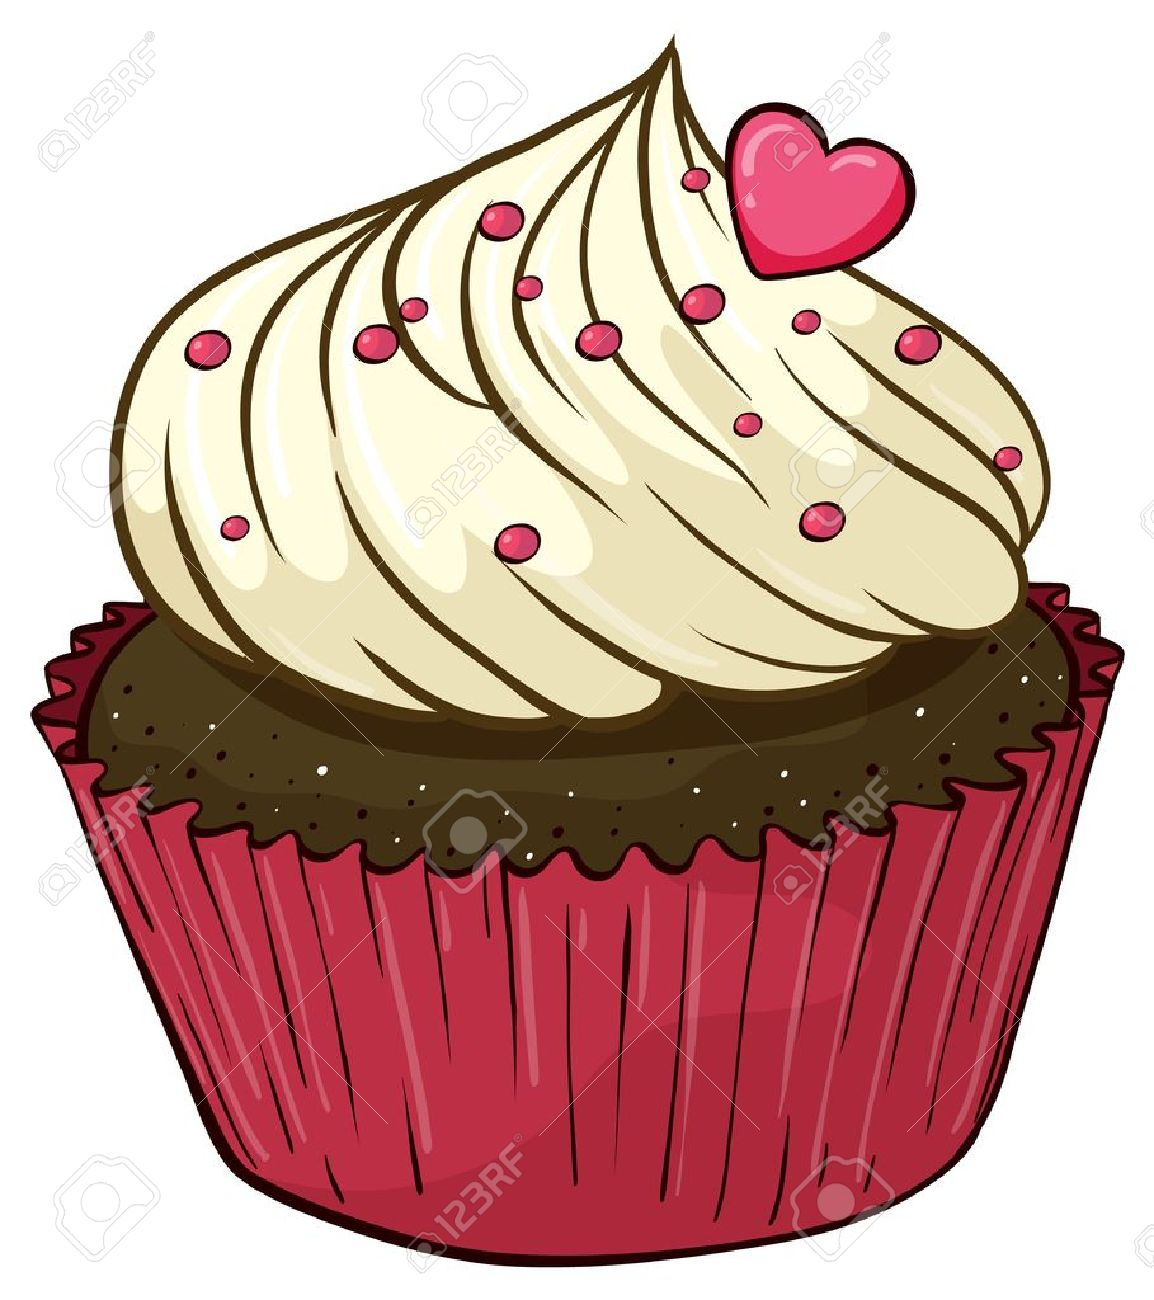 Illustration of an isolated cupcake Stock Vector - 16158004